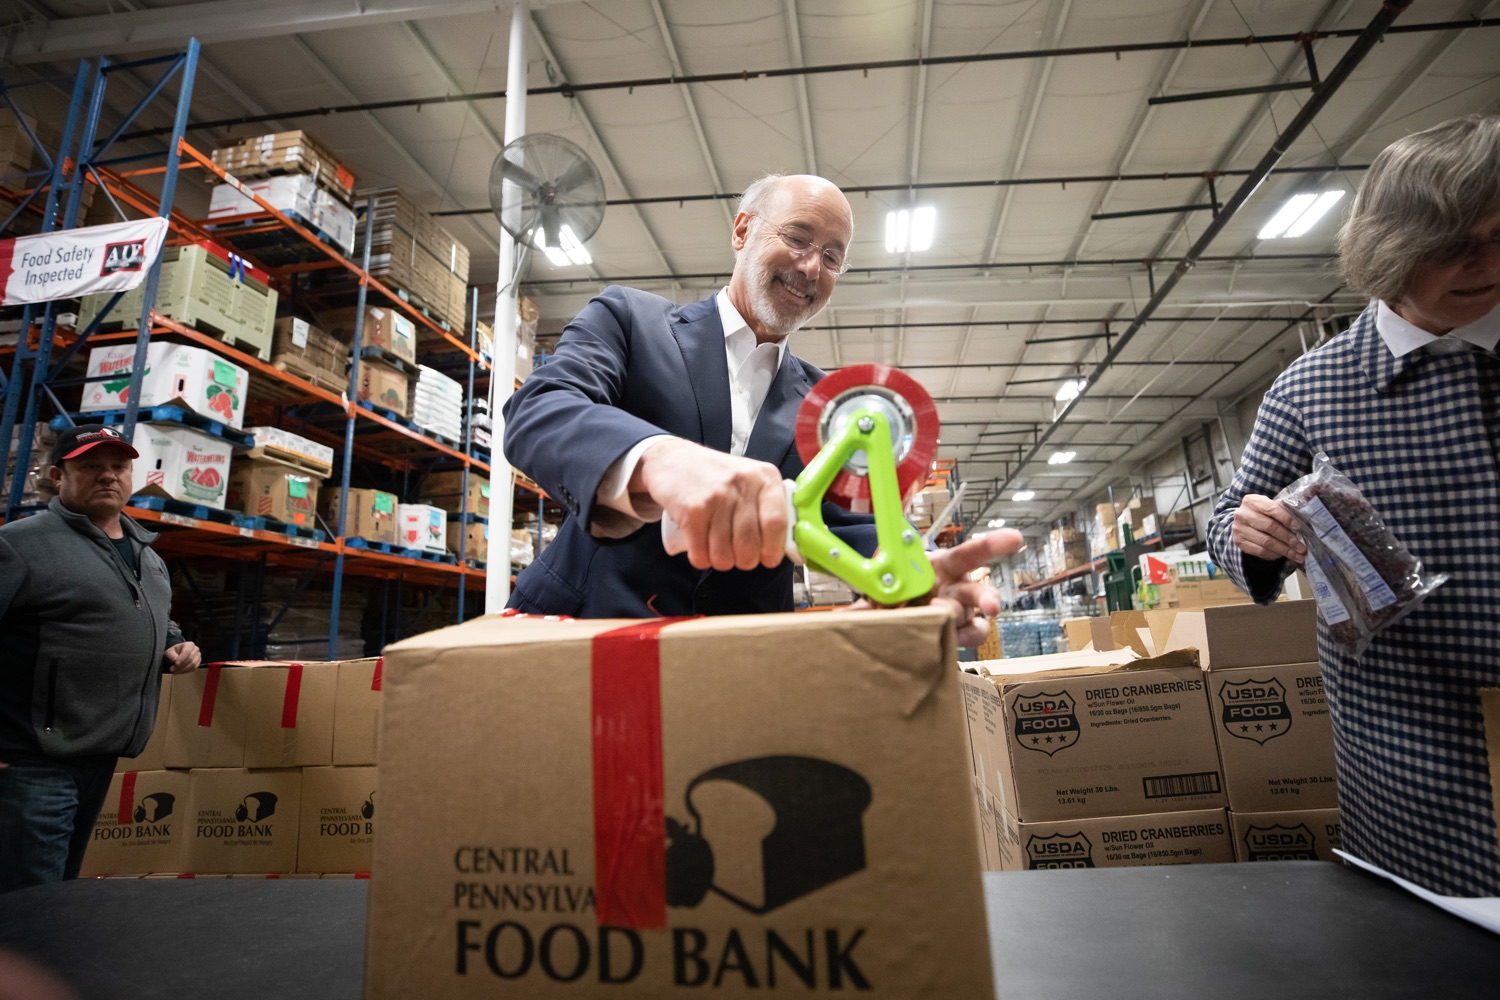 "<a href=""http://filesource.abacast.com/commonwealthofpa/photo/17632_gov_foodbank_volunteering_dz_013.jpg"" target=""_blank"">⇣ Download Photo<br></a>Governor Tom Wolf loading boxes of food at the Central Pennsylvania Food Bank.  The governor and first lady visit the Central Pennsylvania Food Bank in Harrisburg to participate in a volunteer project, packing boxes of food for veterans and their families. Ahead of Thanksgiving and the holiday season, Governor Tom Wolf and First Lady Frances Wolf are reminding Pennsylvanians of the importance of helping each other. Harrisburg, PA  Tuesday November 26, 2019"